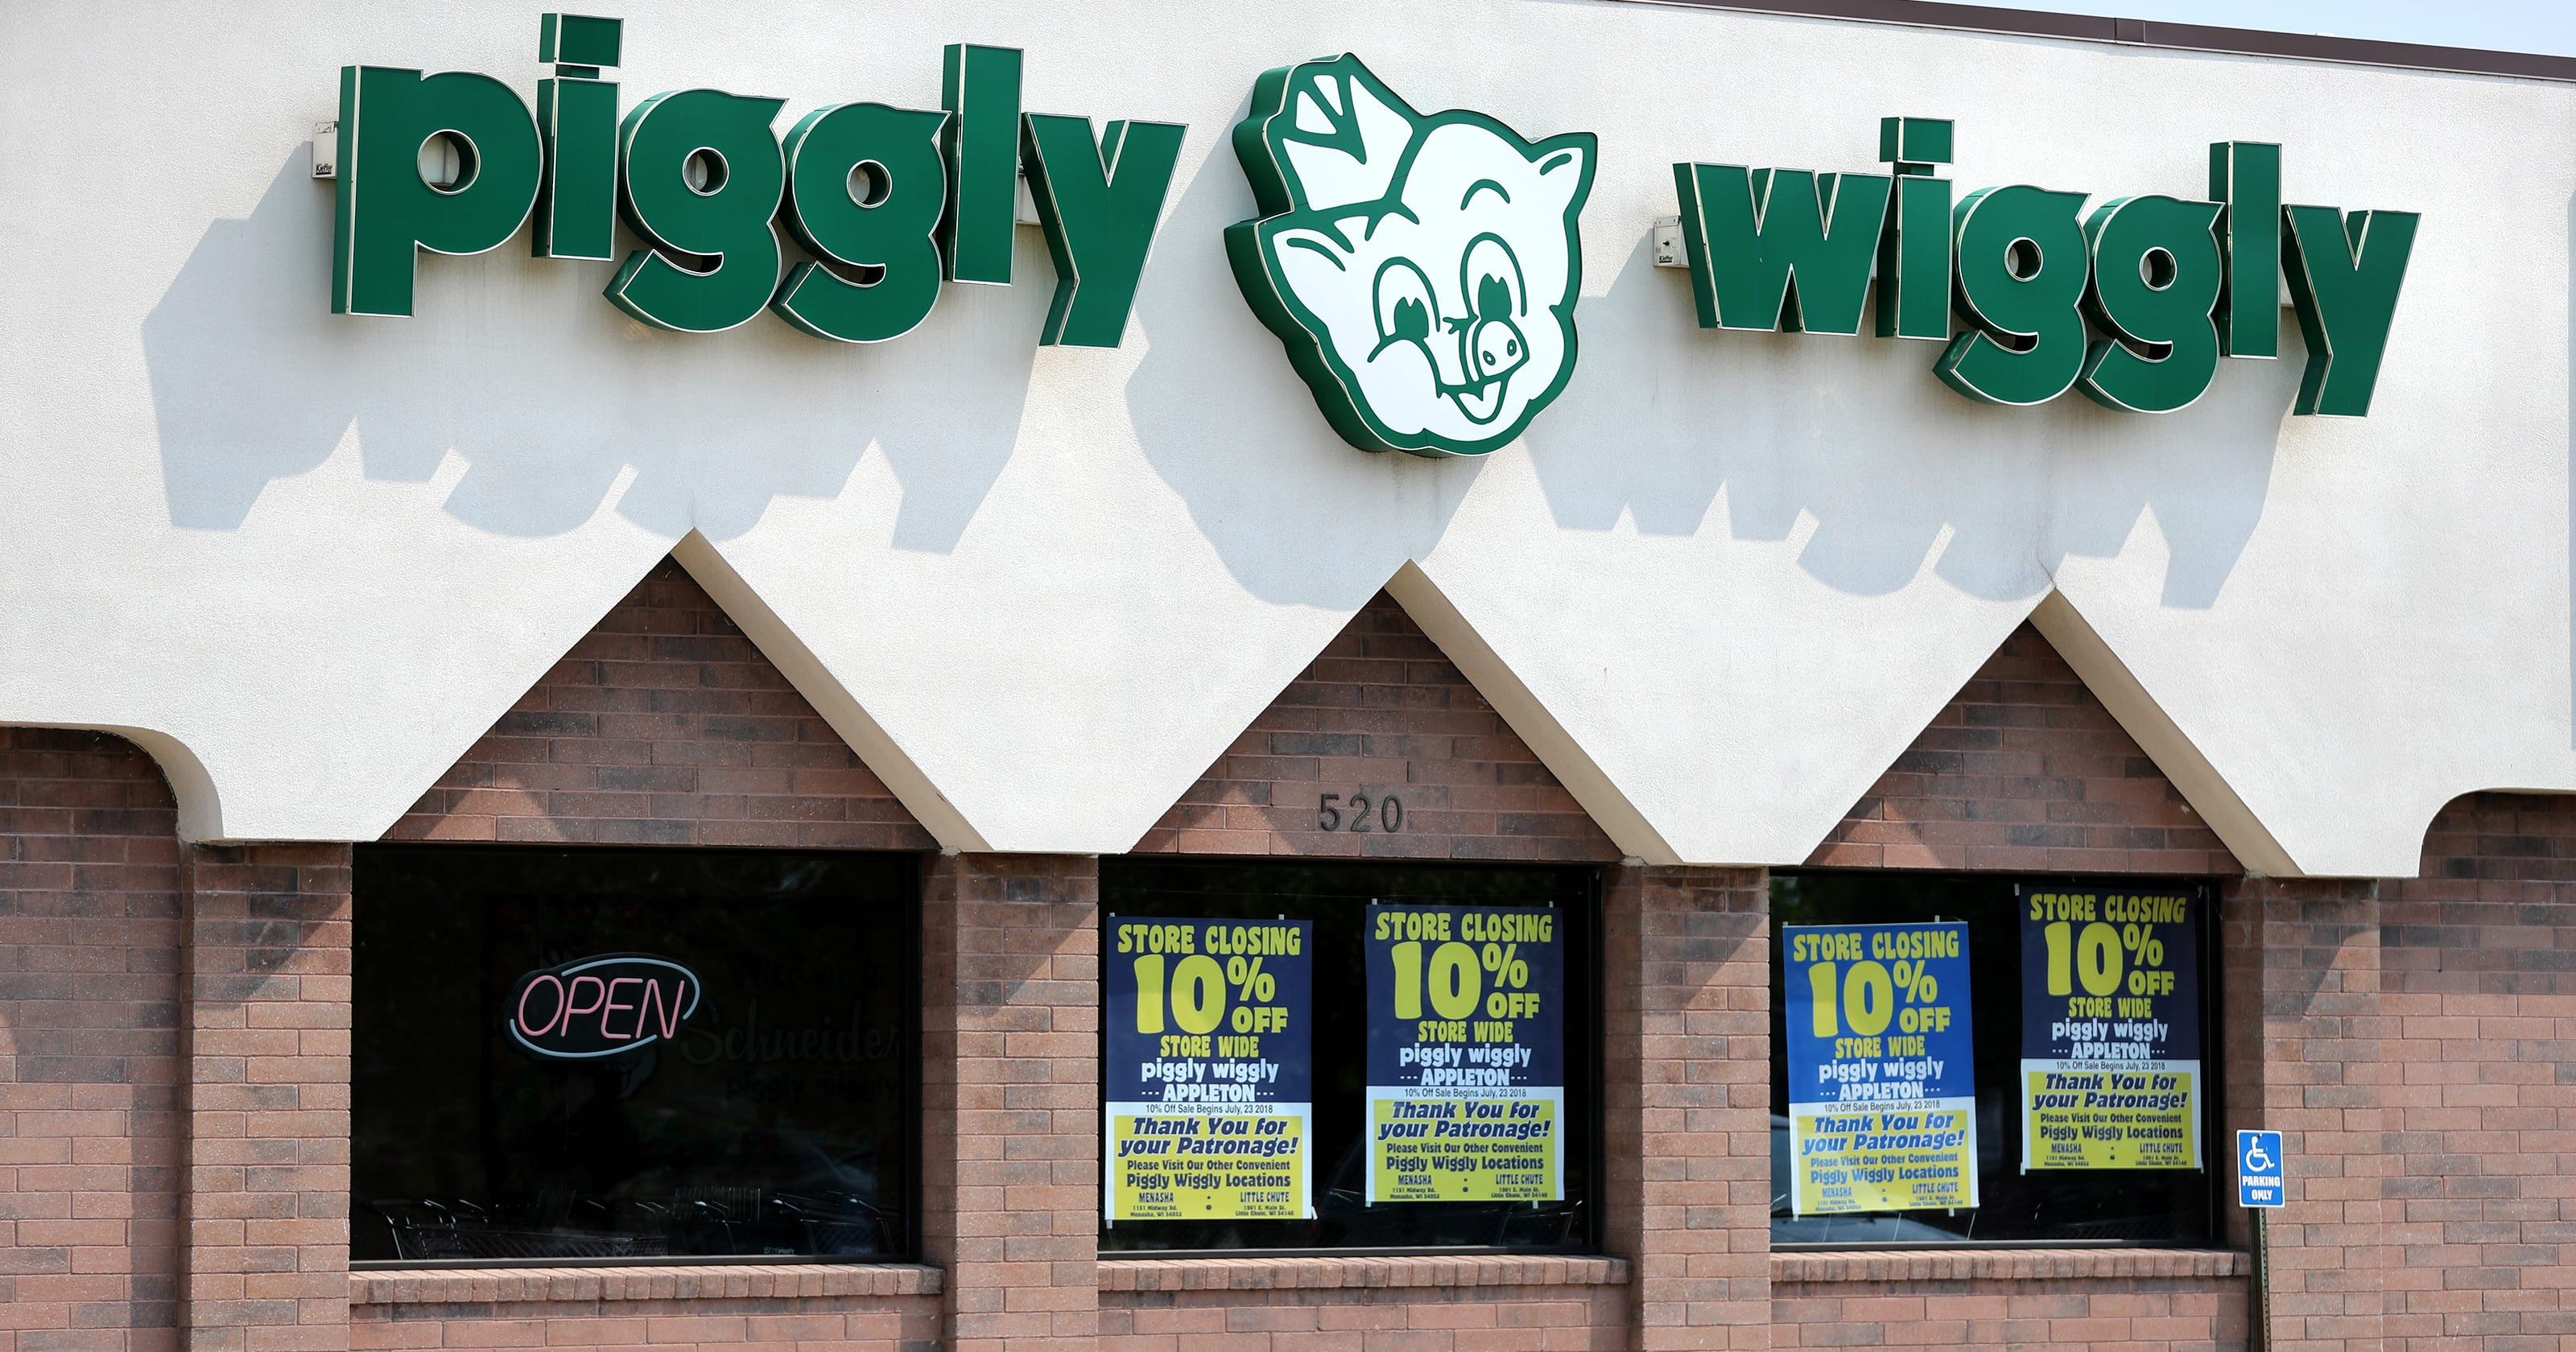 piggly wiggly in appleton to close the buzz